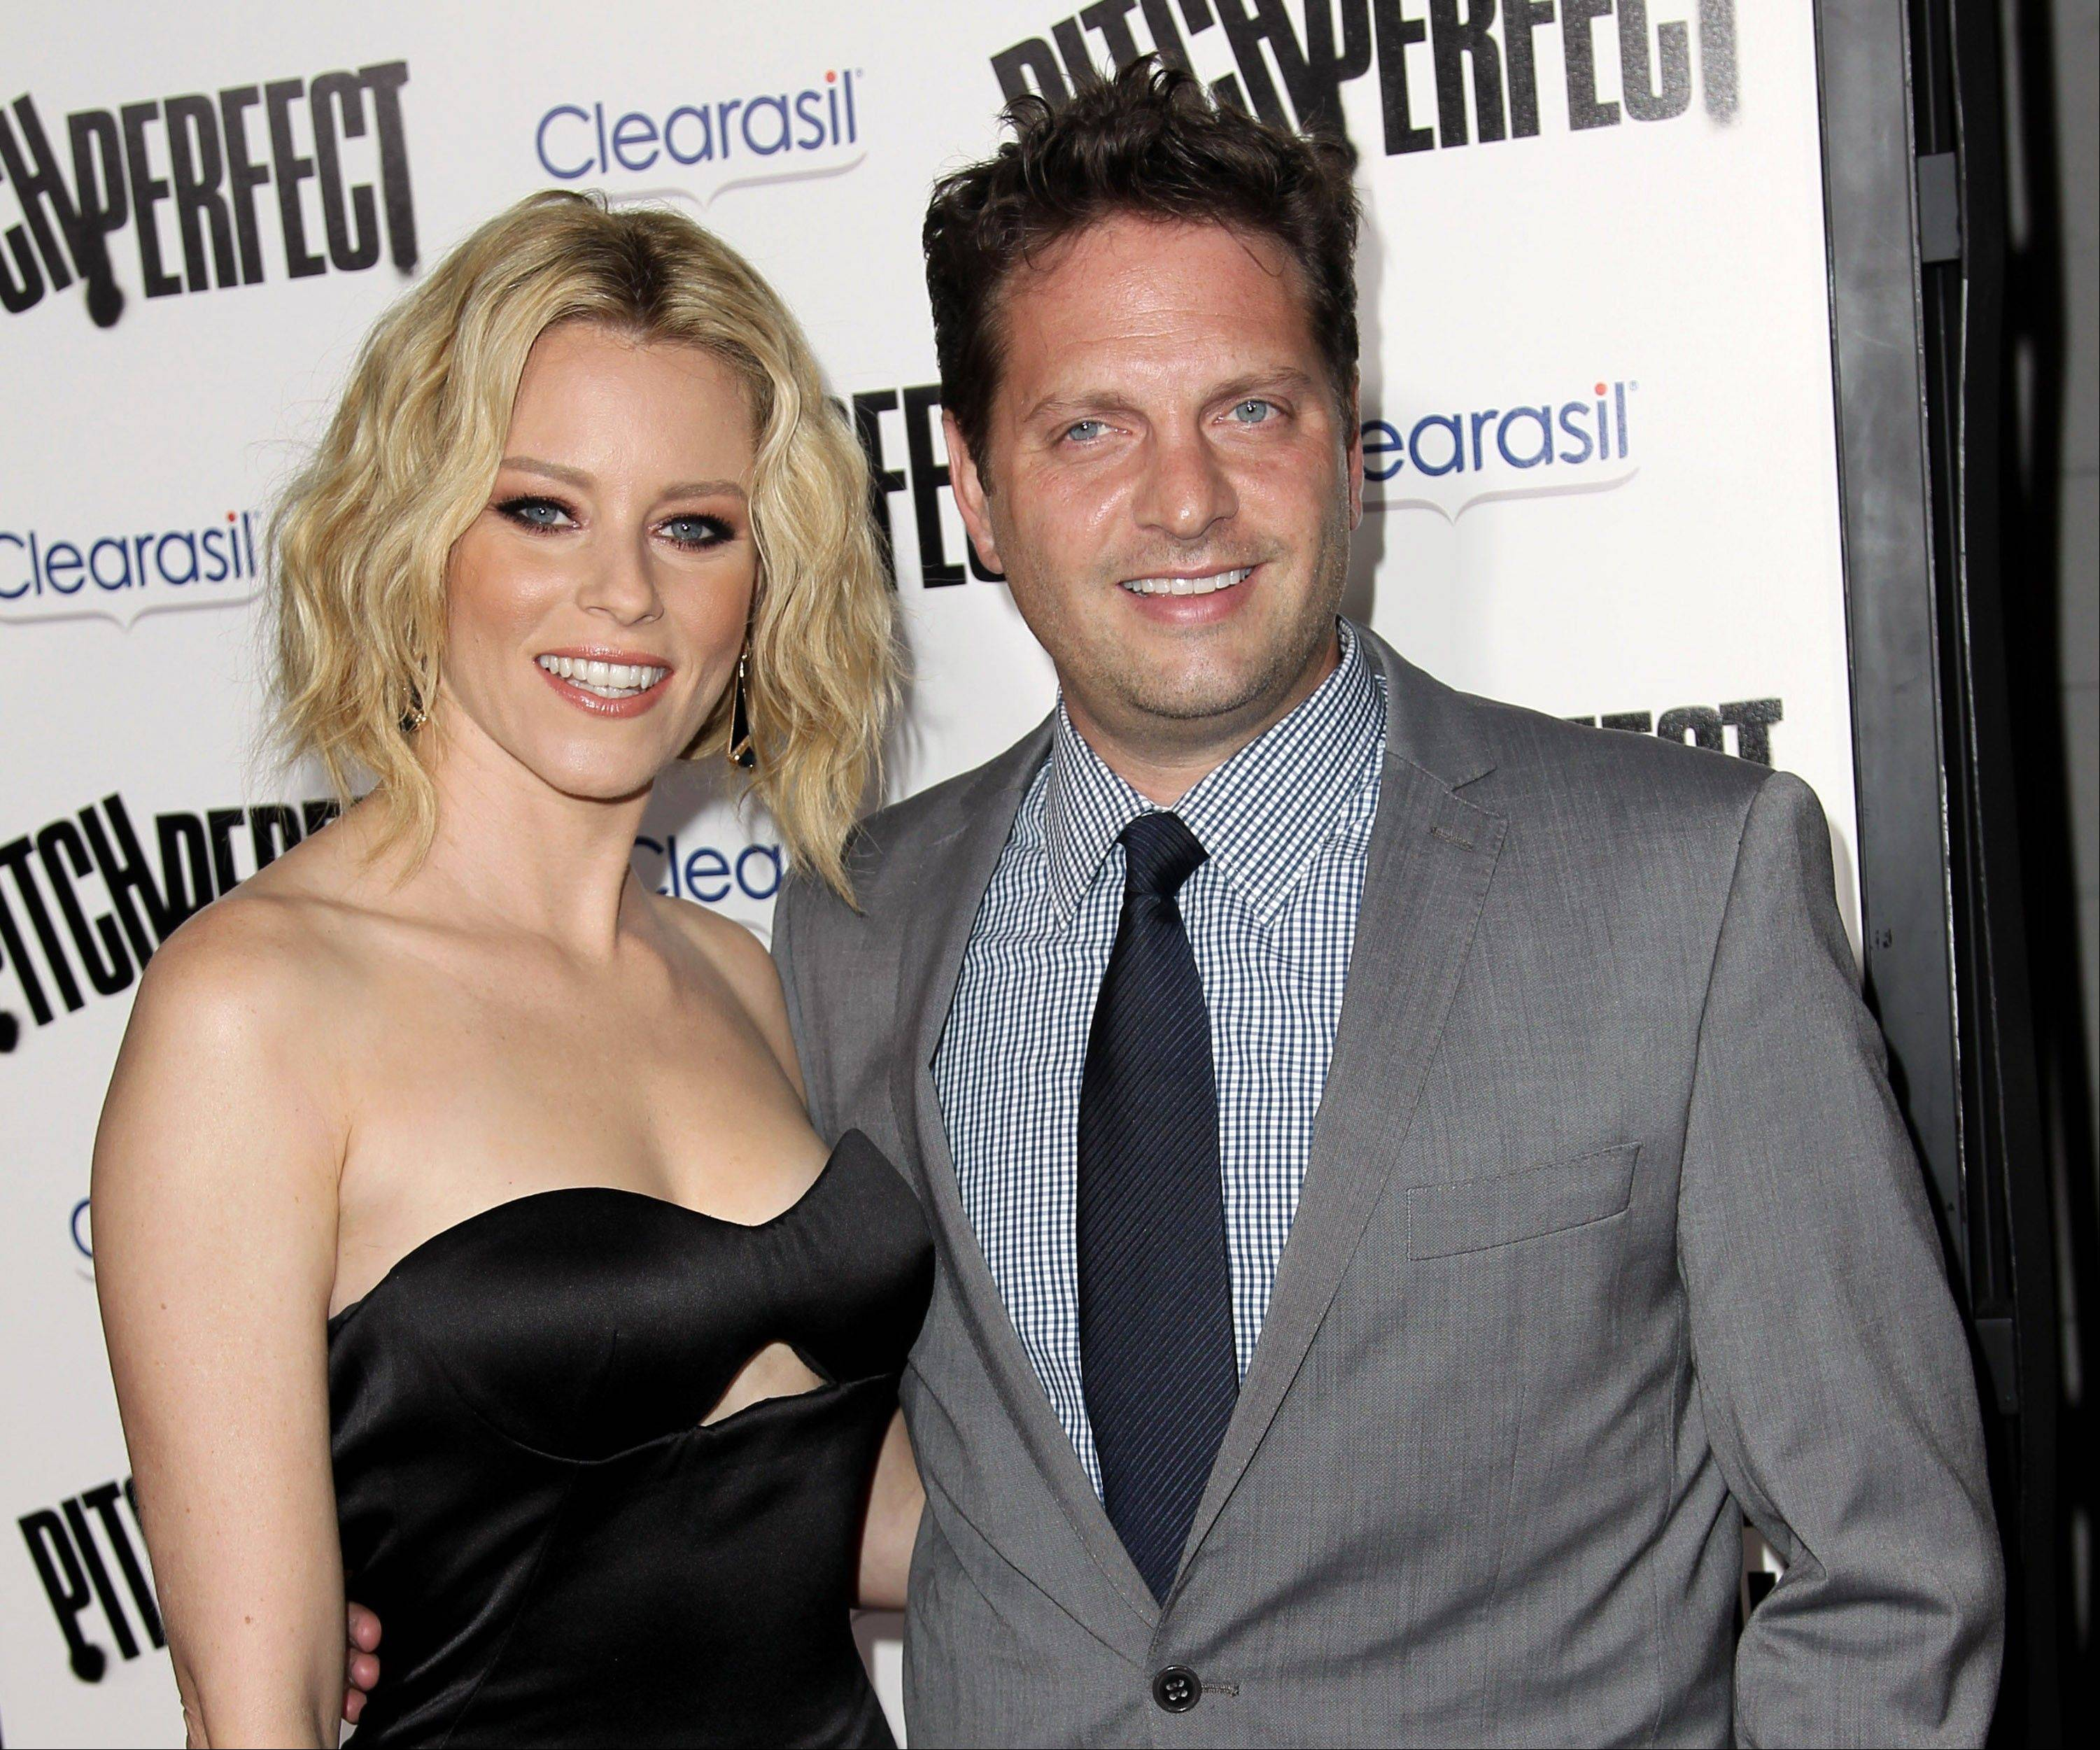 Elizabeth Banks and her husband, Max Handelman, announced the arrival of the couple's second son, Magnus Mitchell Handelman, who was born via gestational surrogate.